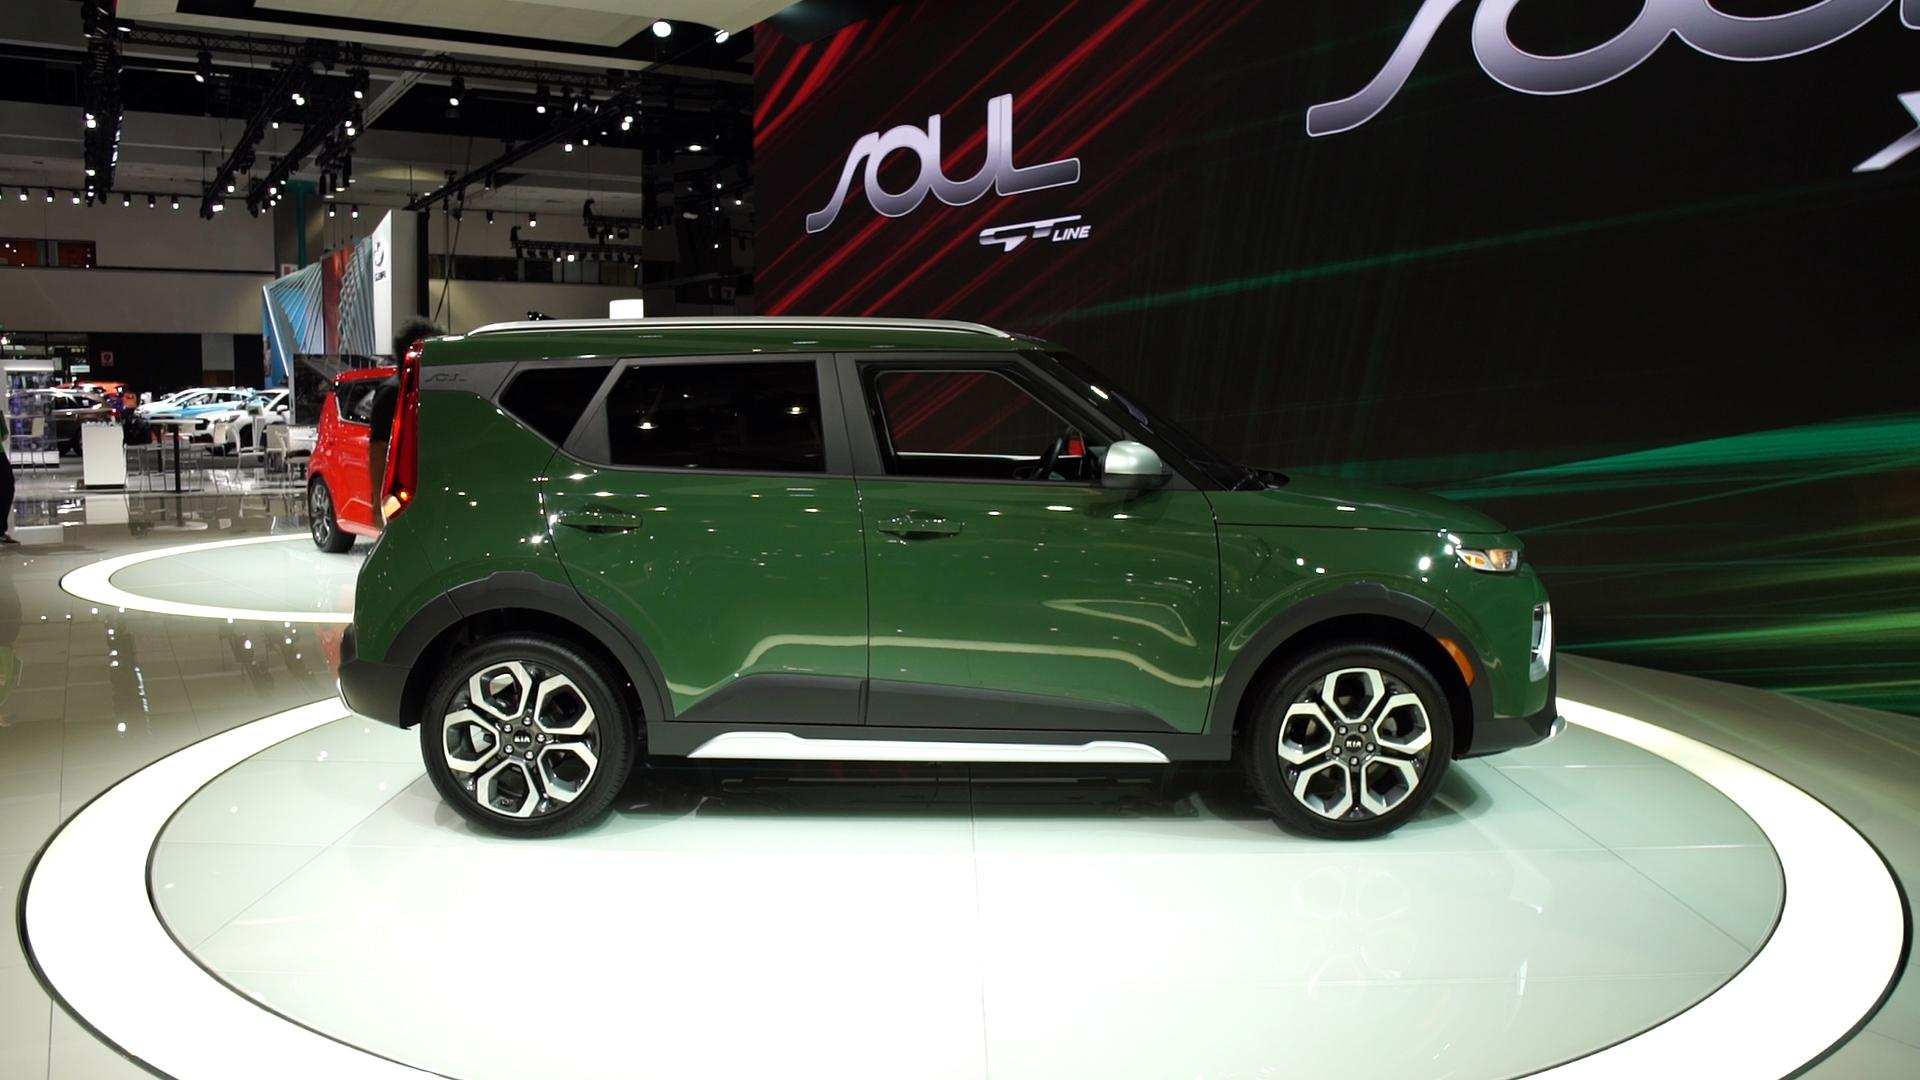 redesigned 2020 kia soul remains stylish practical and distinct [ 1920 x 1080 Pixel ]